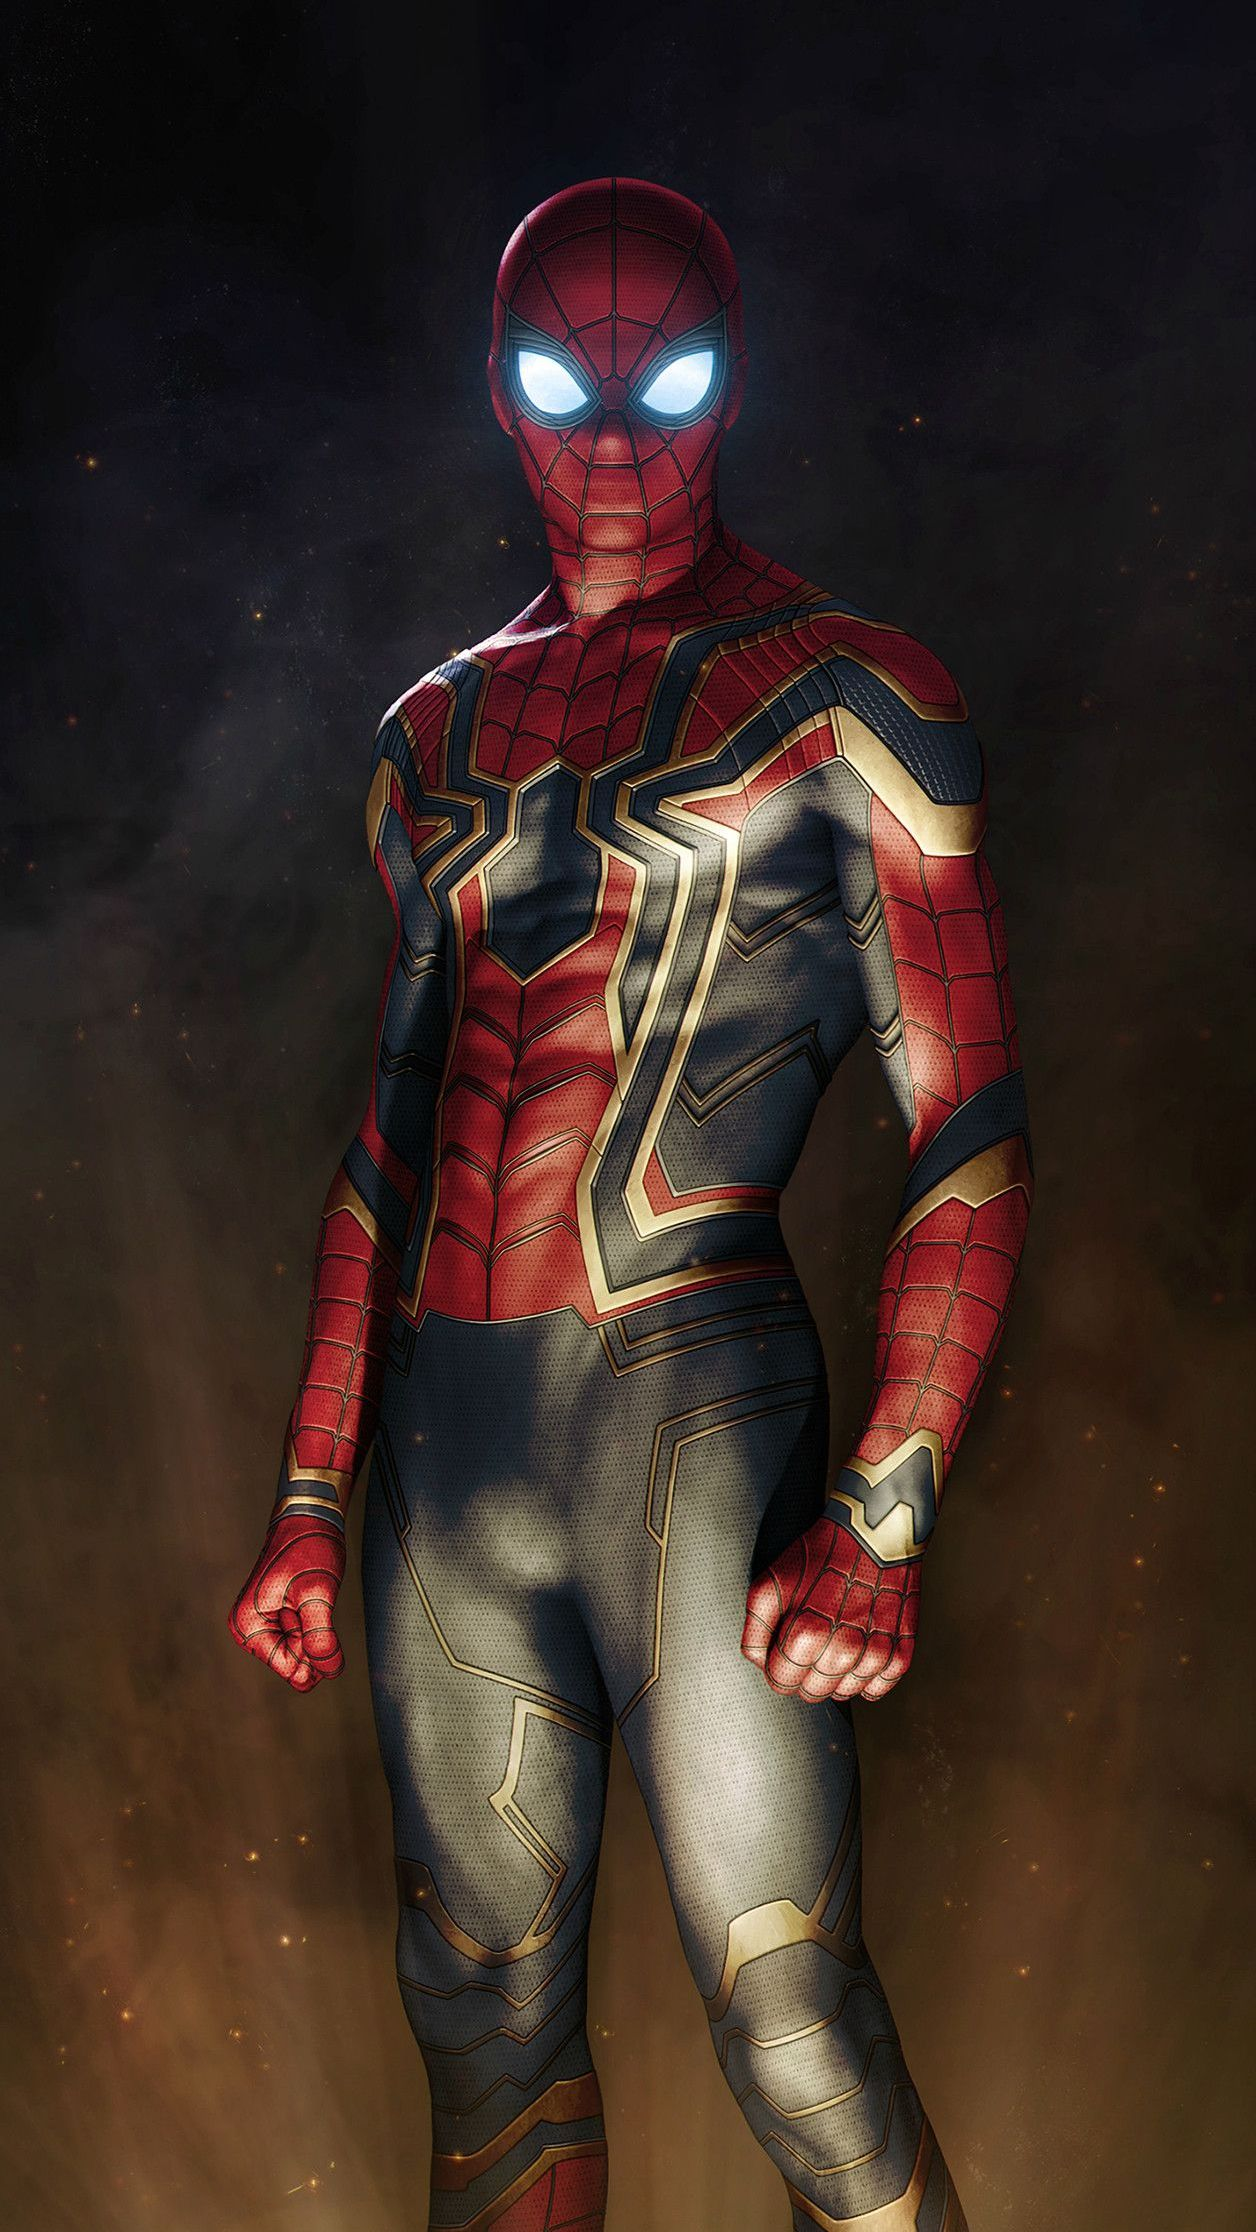 Iron Spiderman Suit Avengers Iphone Wallpaper Iron Spider Suit